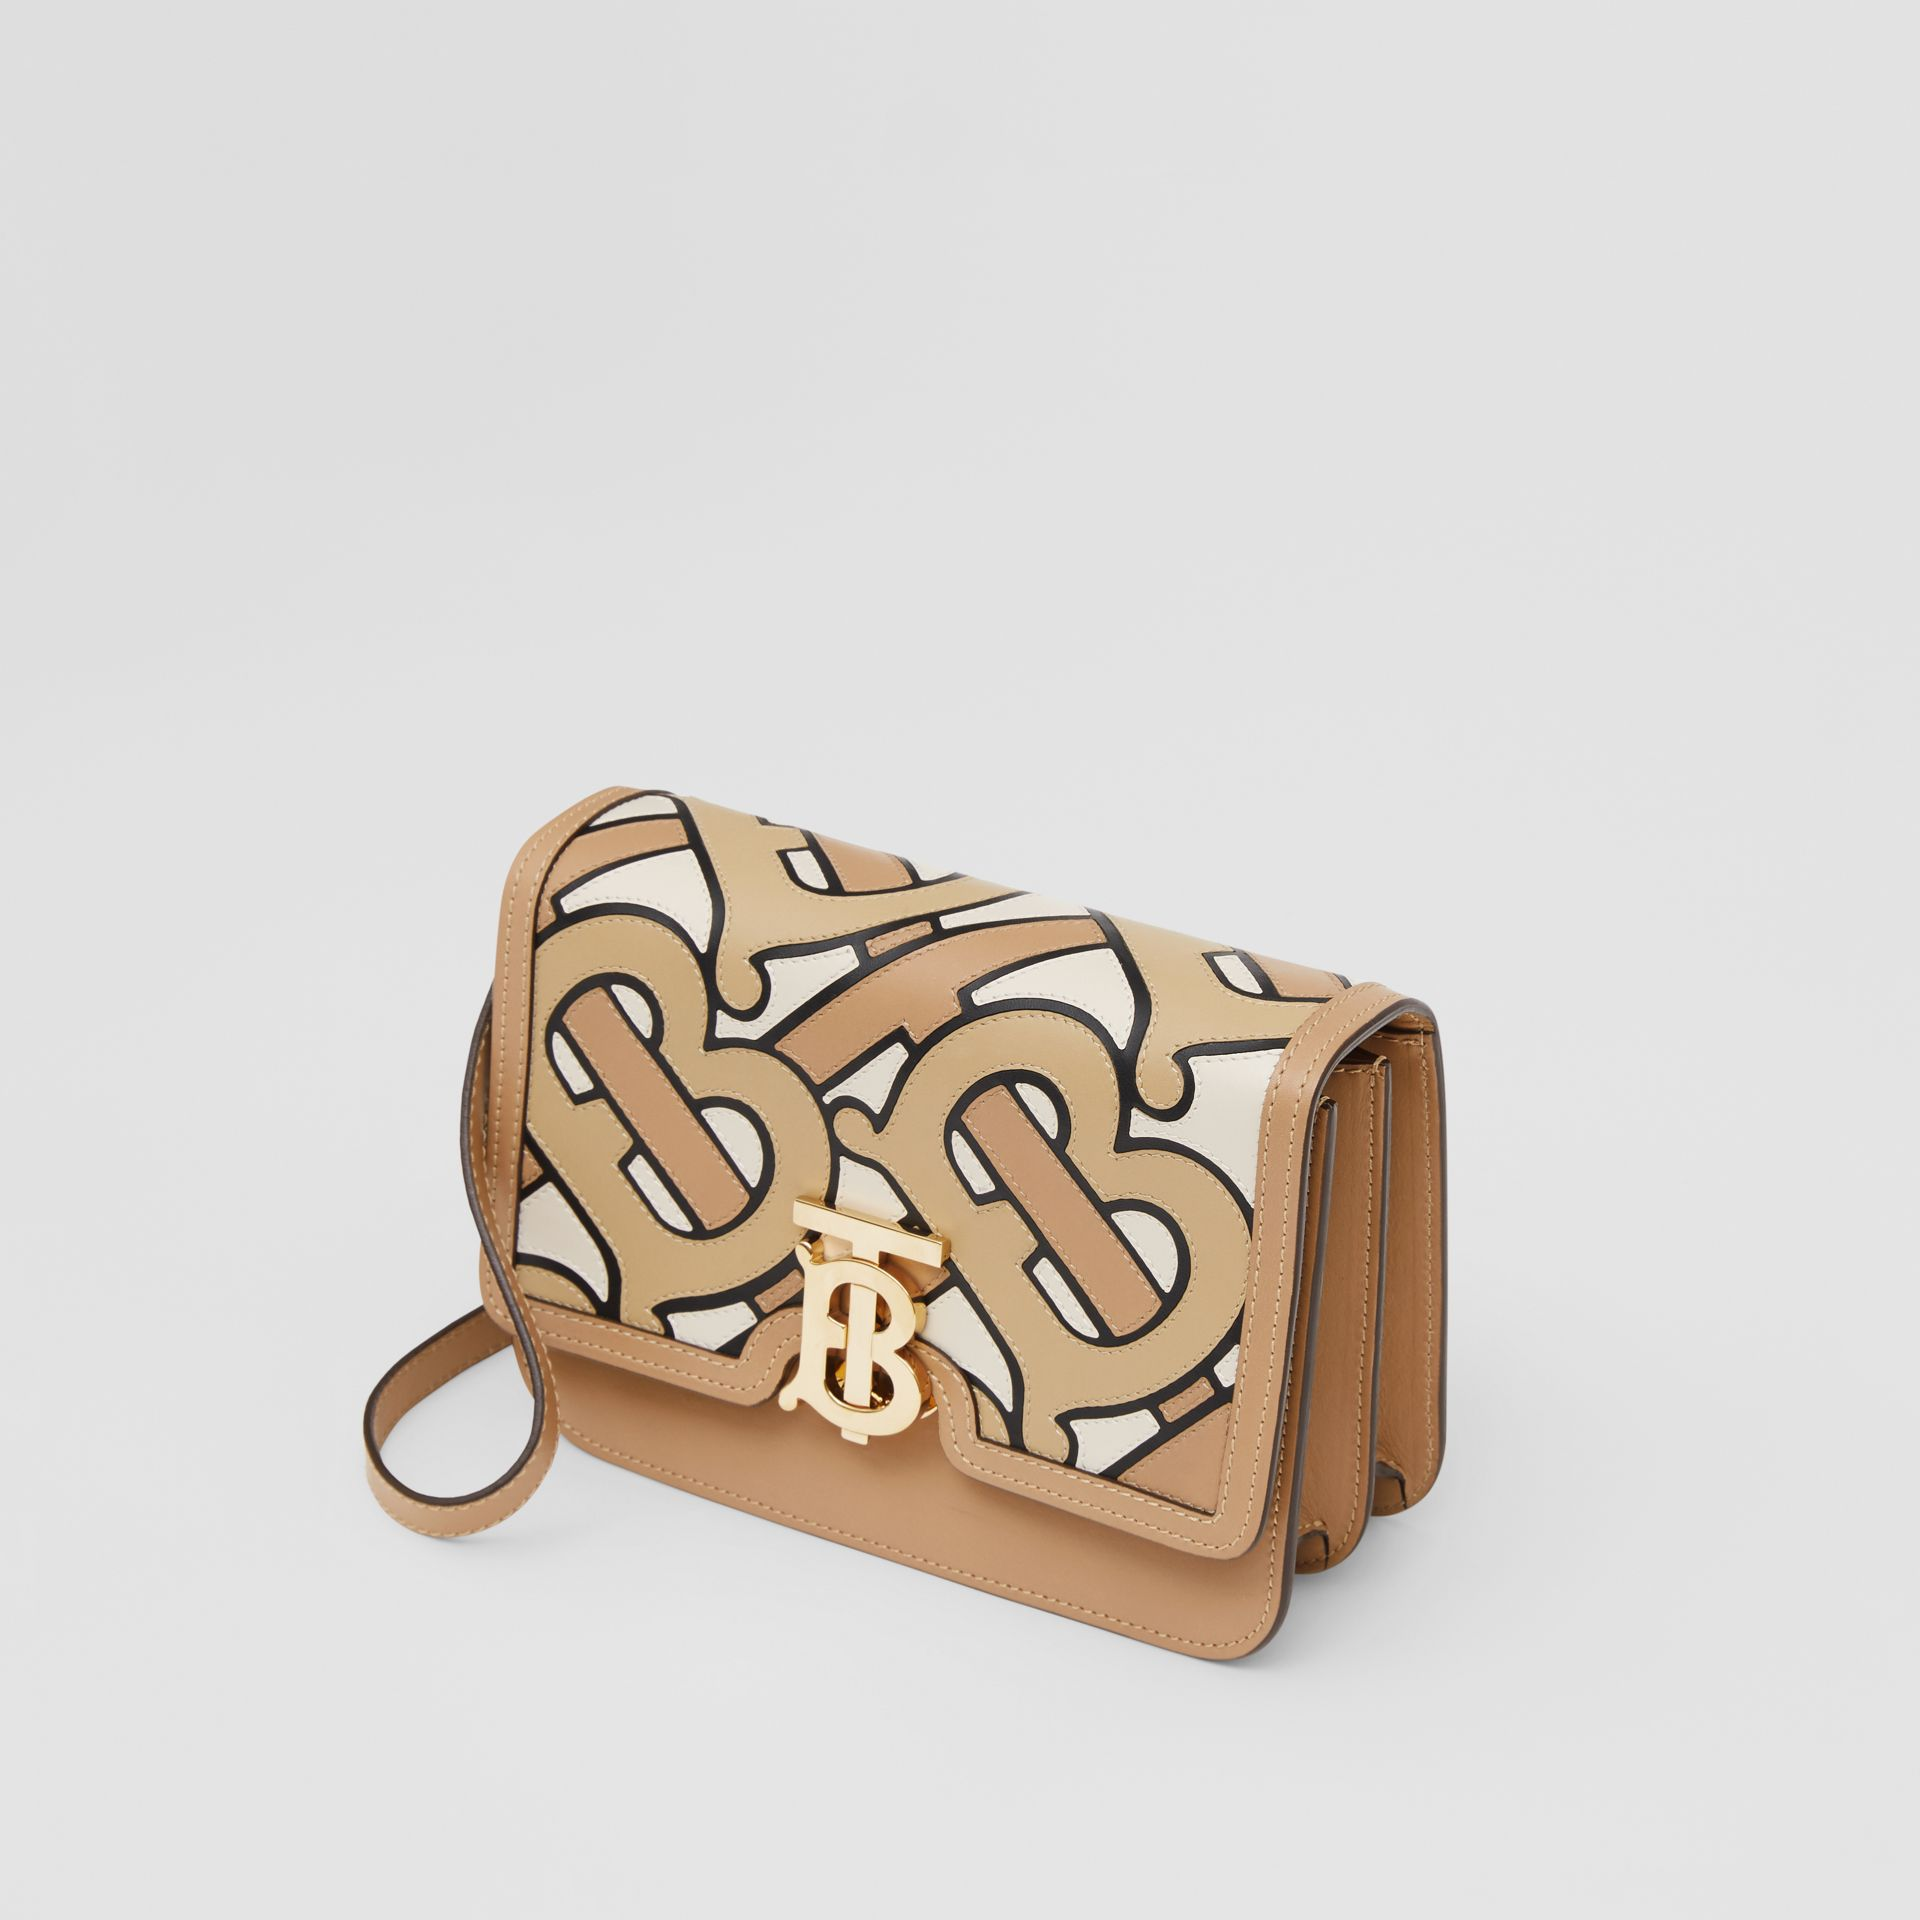 Small Monogram Intarsia Leather TB Bag in Beige - Women | Burberry - gallery image 3